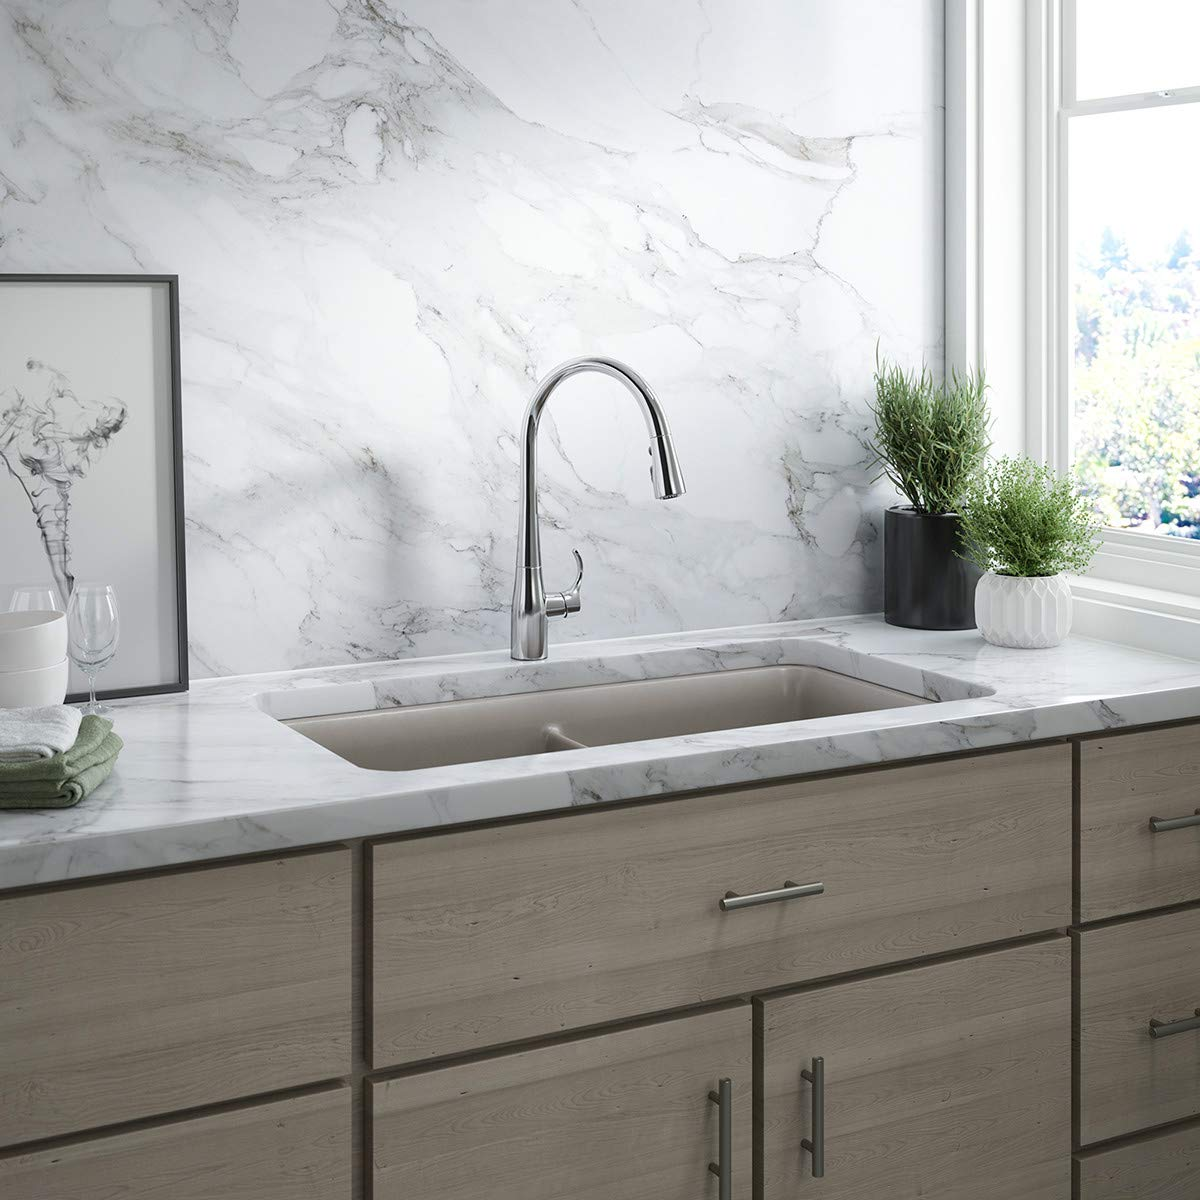 KOHLER K-596-CP Simplice High-Arch Single-Hole or Three-Hole, Single Handle, Pull-Down Sprayer Kitchen Faucet, Polished Chrome with 3-function Spray Head, Sweep Spray and Docking Spray Head Technology by Kohler (Image #4)